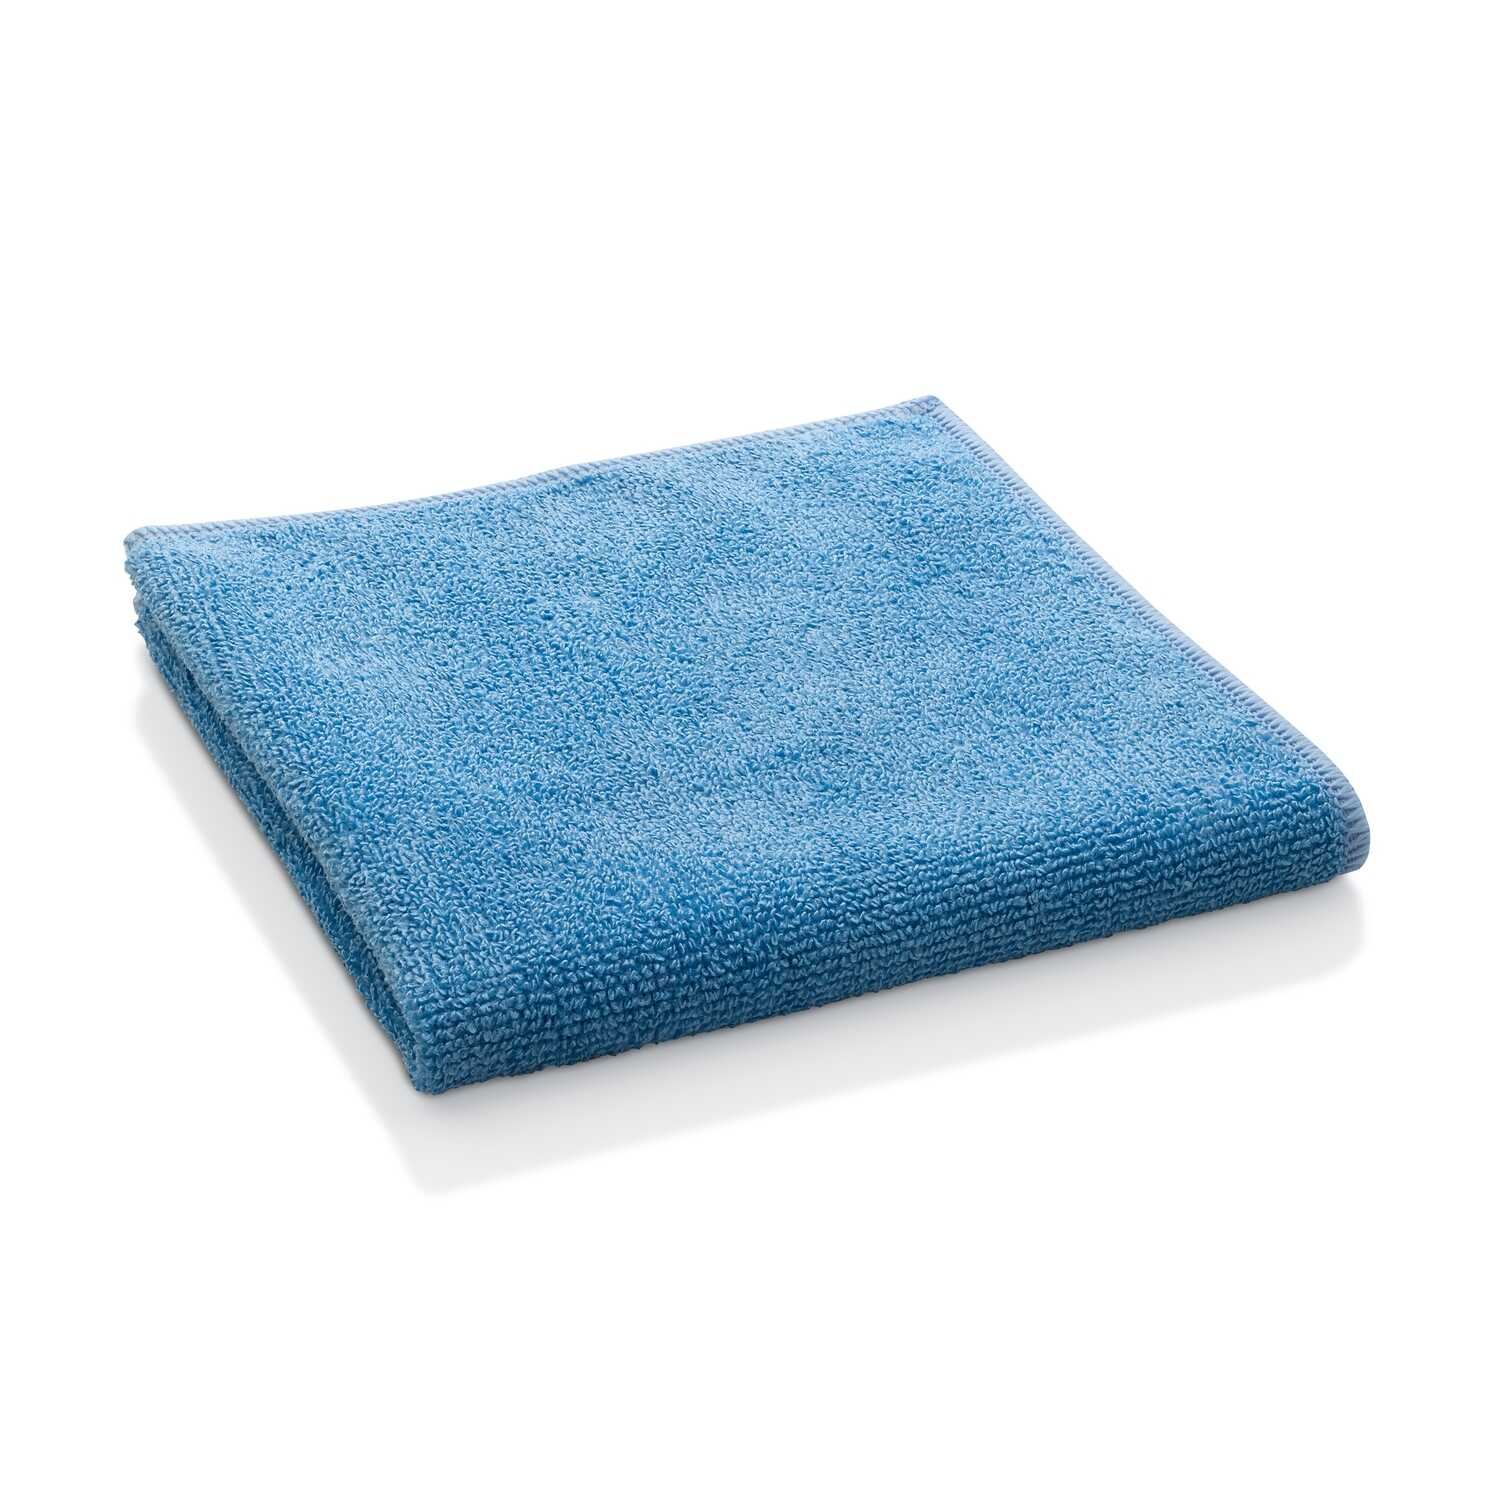 E-Cloth  General Purpose  Polyamide/Polyester  Cleaning Cloth  12-1/2 in. W x 12-1/2 in. L 1 pk